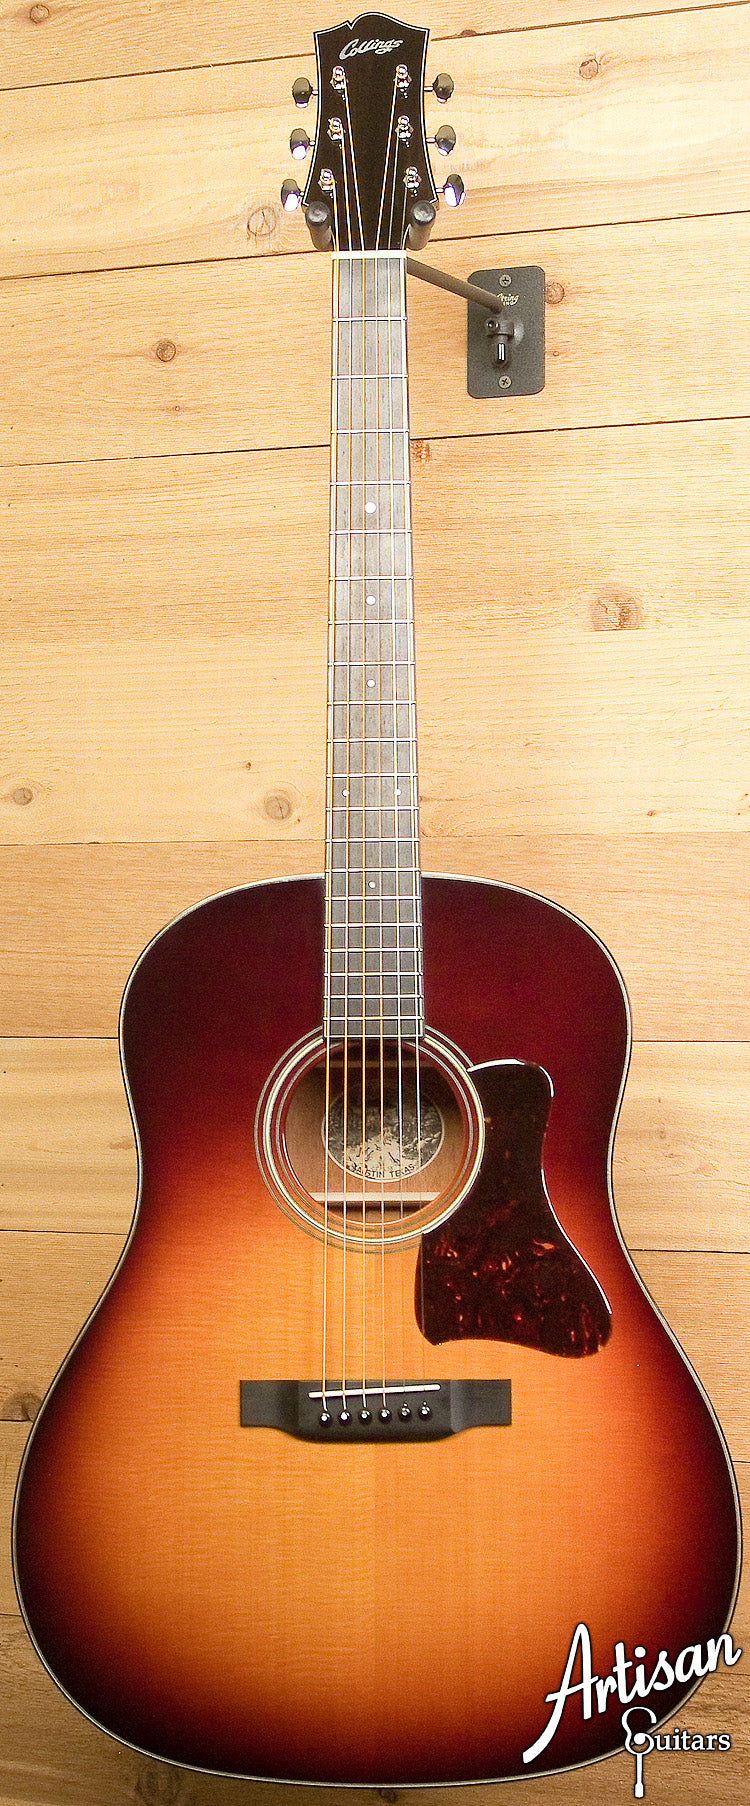 Collings CJ Mh SB Sitka Spruce and Mahogany ID-6225 - Artisan Guitars